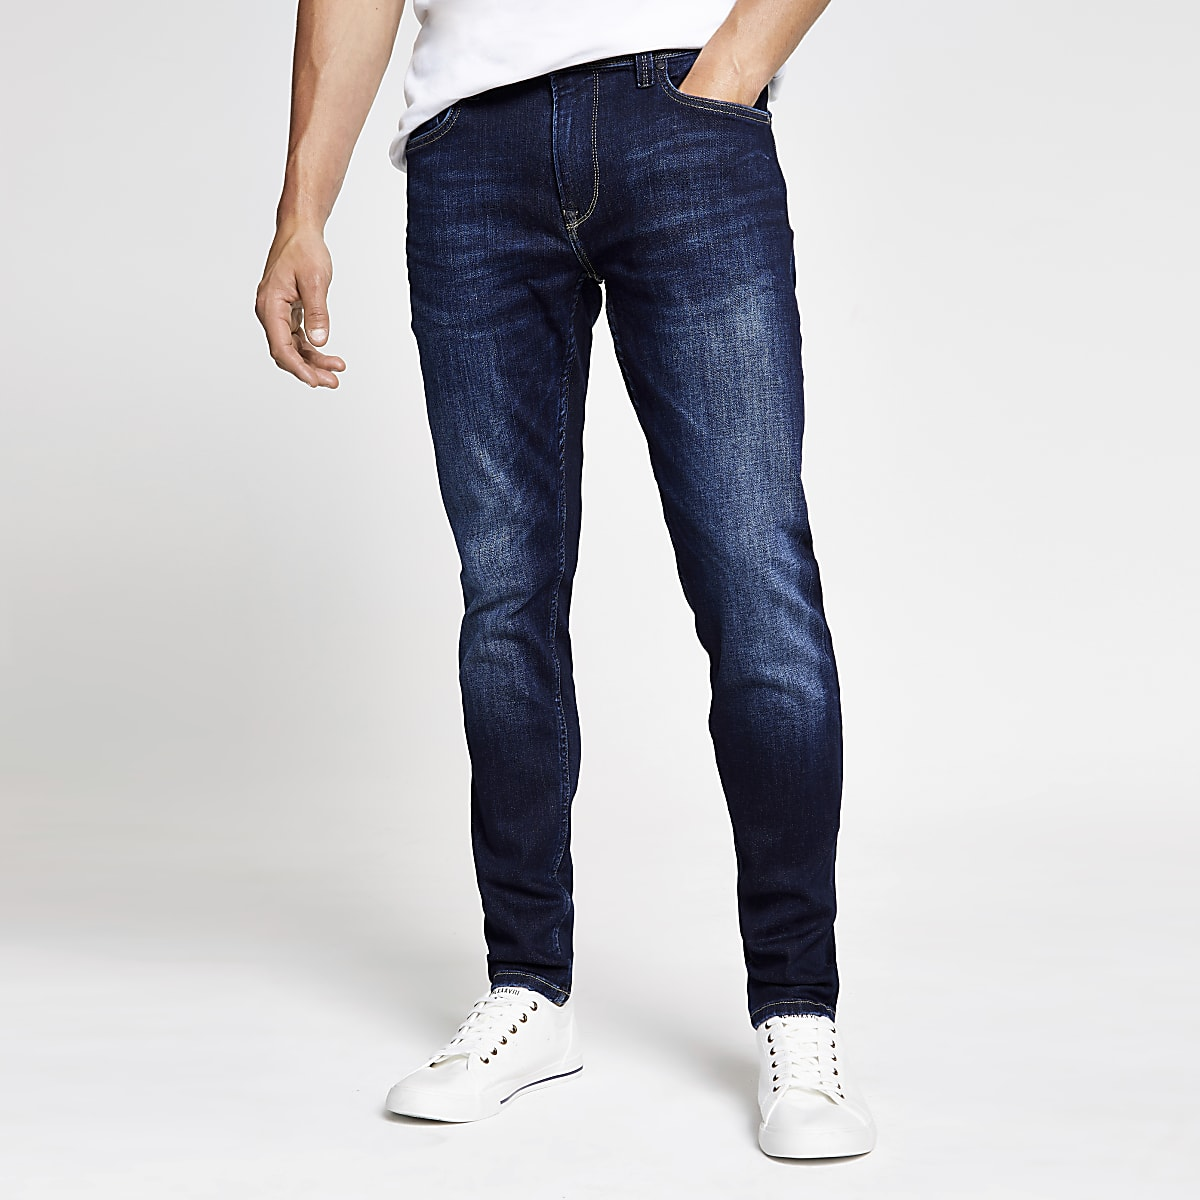 Pepe Jeans - Lichtblauwe skinny jeans